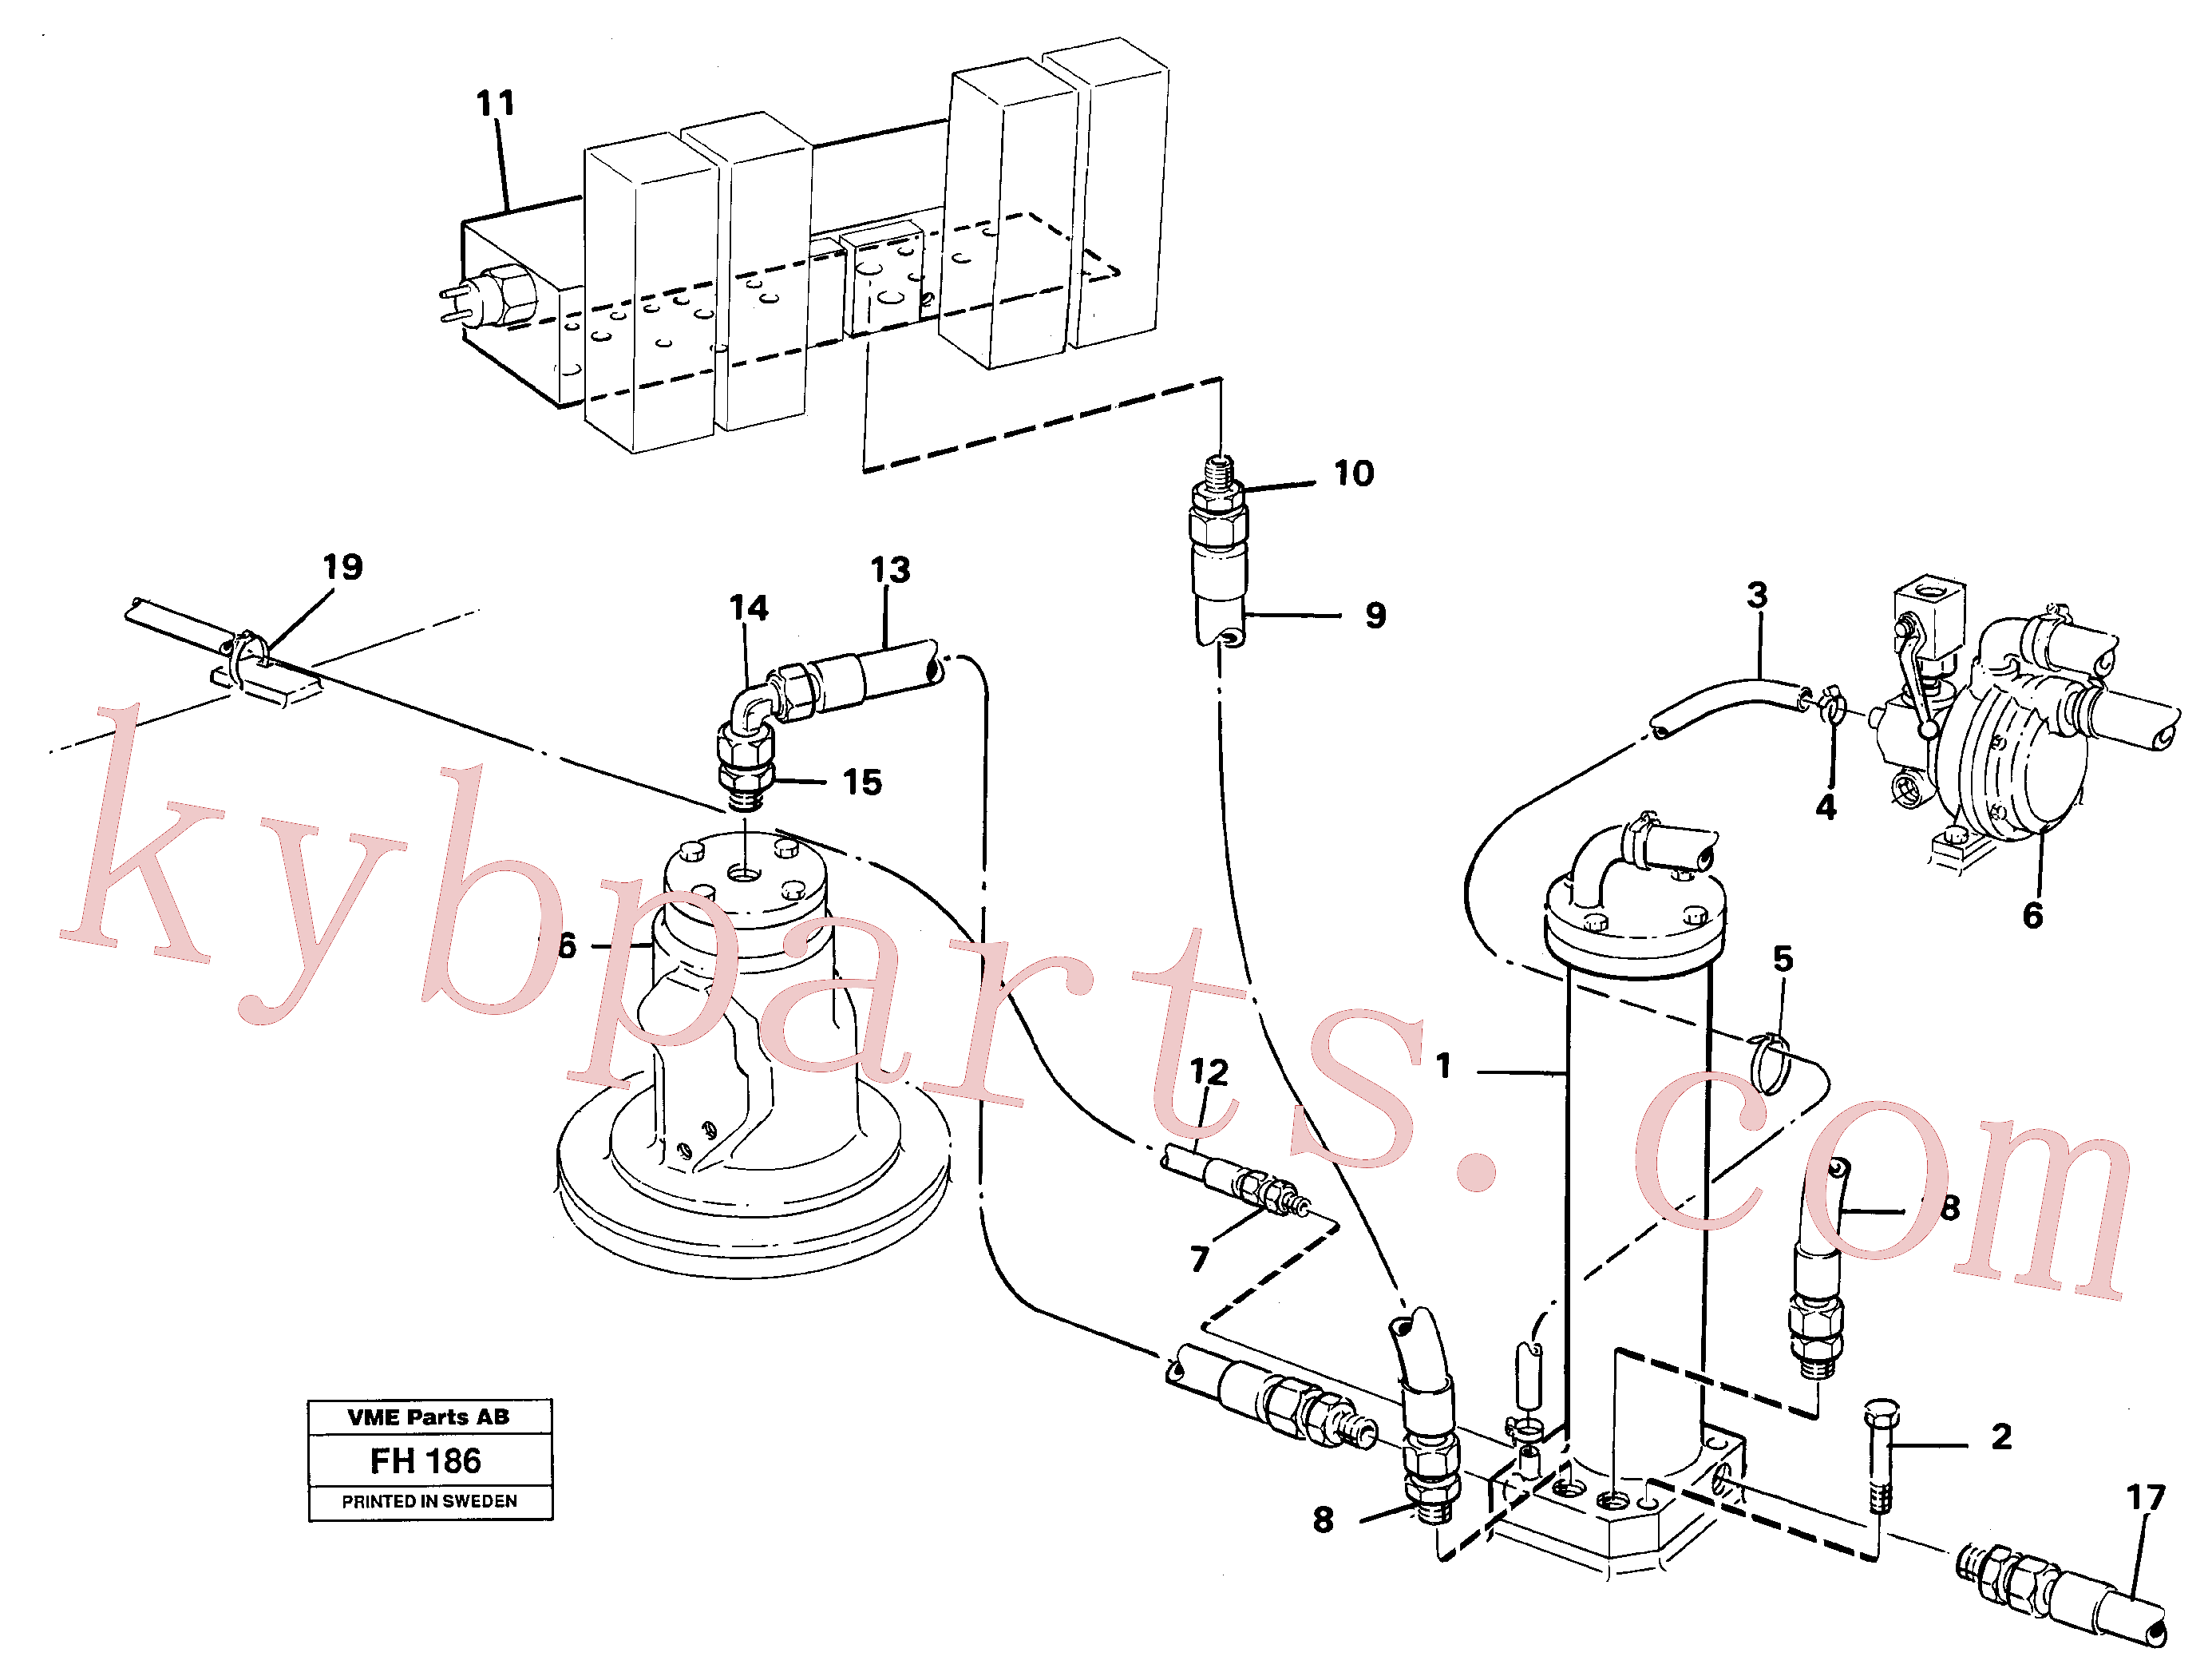 VOE14013952 for Volvo Leak oil filter, with connections(FH186 assembly)